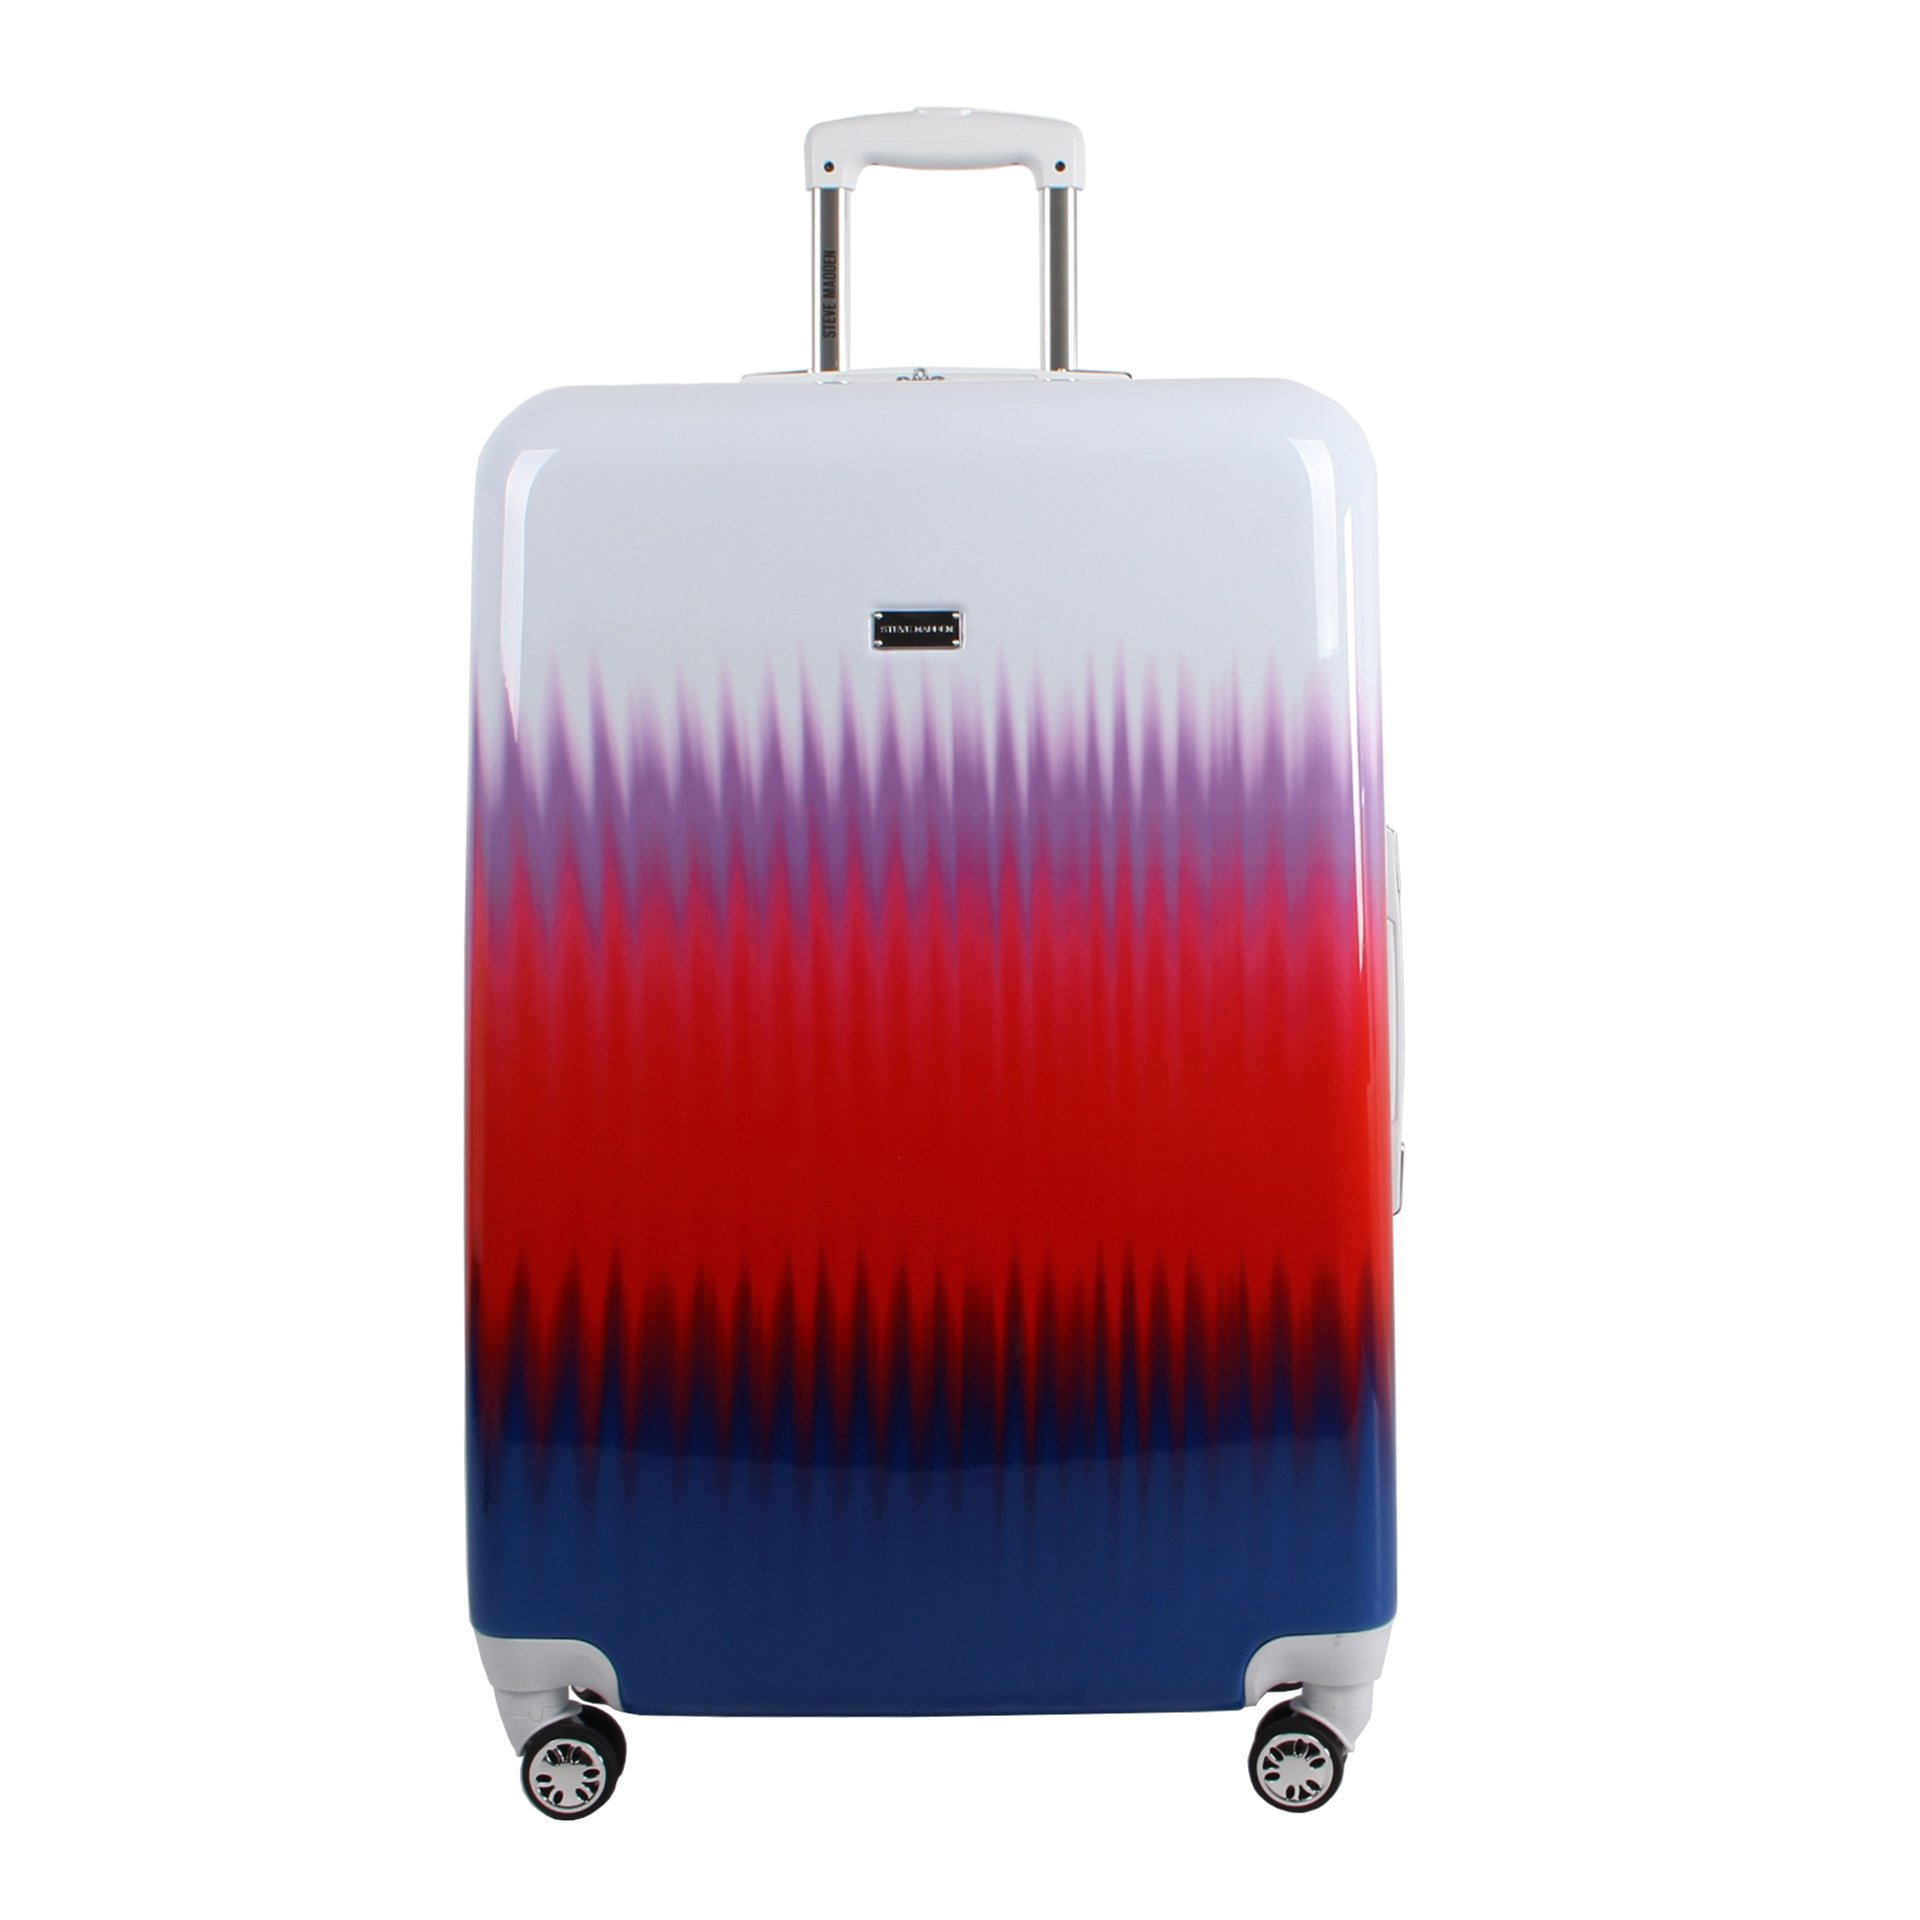 Steve Madden Large Hard Case Luggage With Spinner Wheels (Spikes)